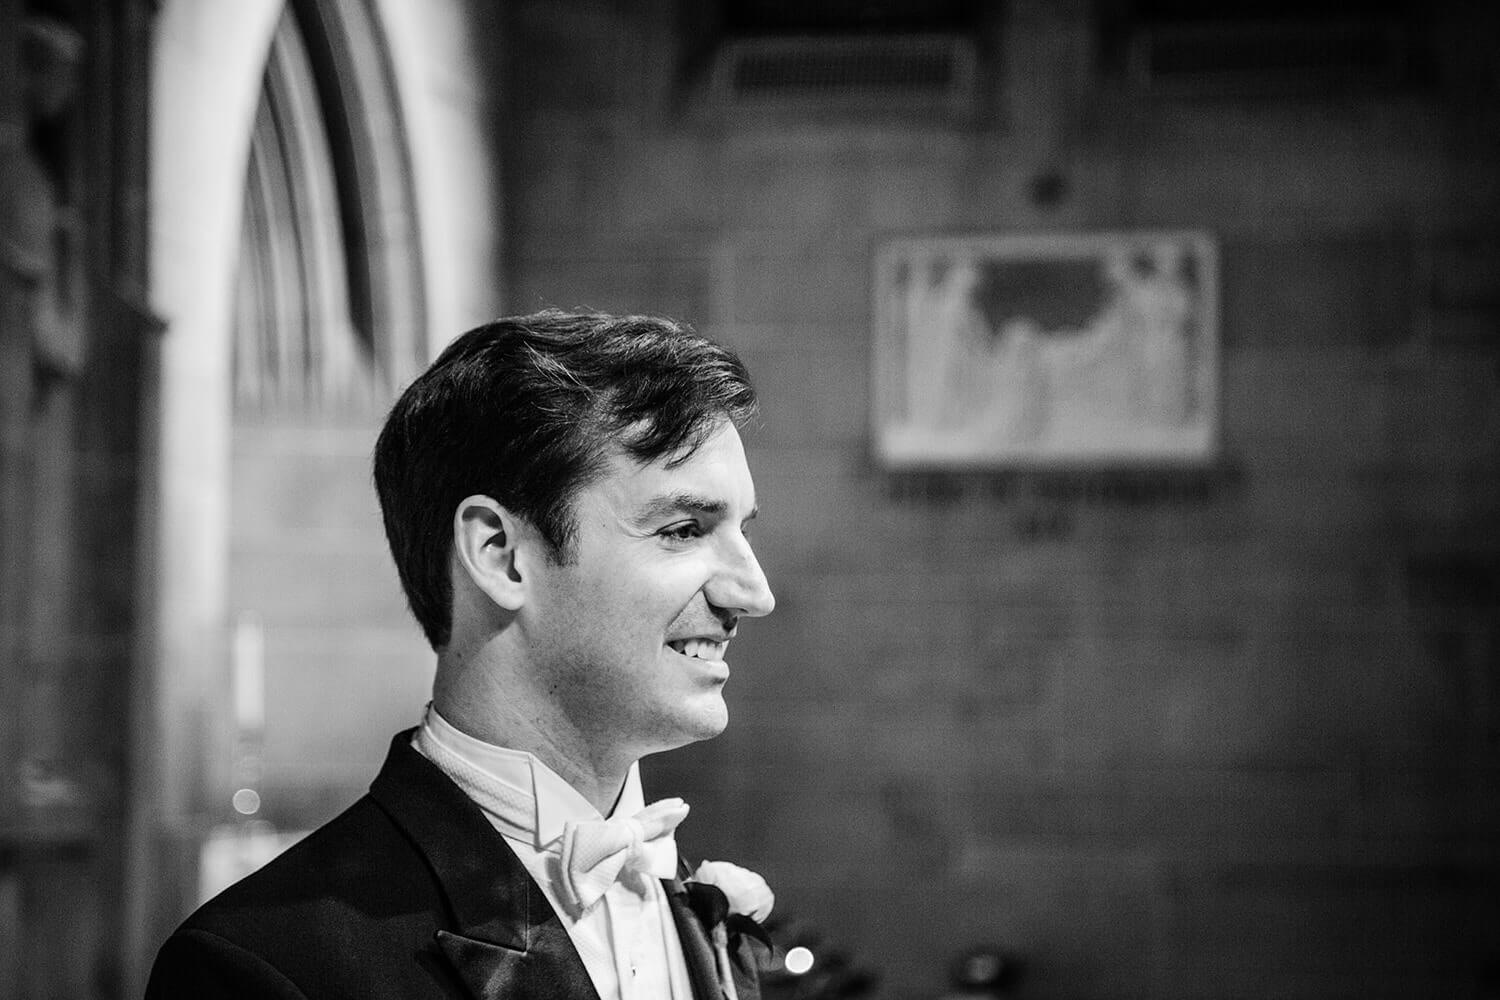 groom watching the bride entrance